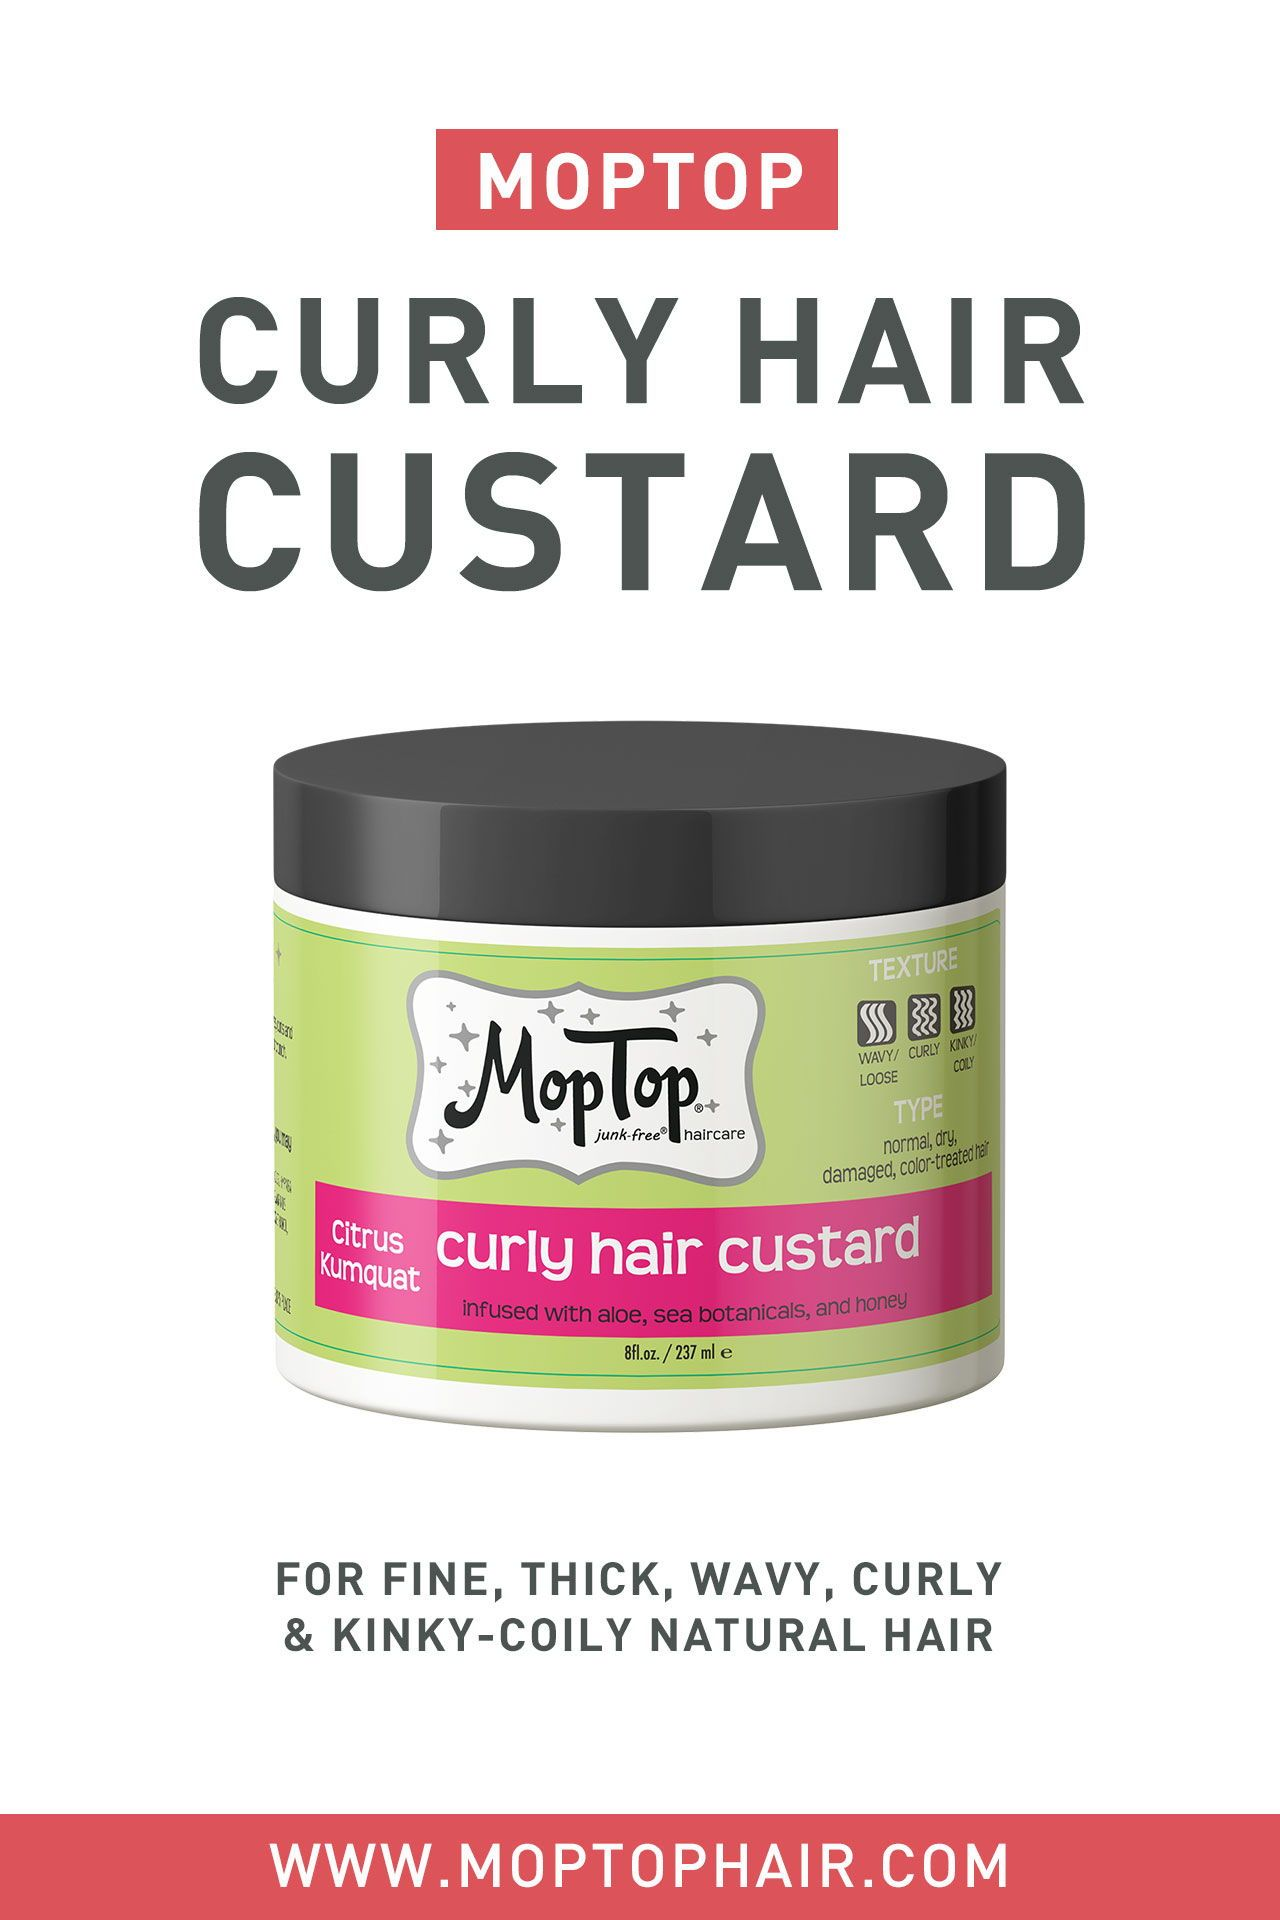 Curly Hair Custard Curly hair styles, Natural hair care